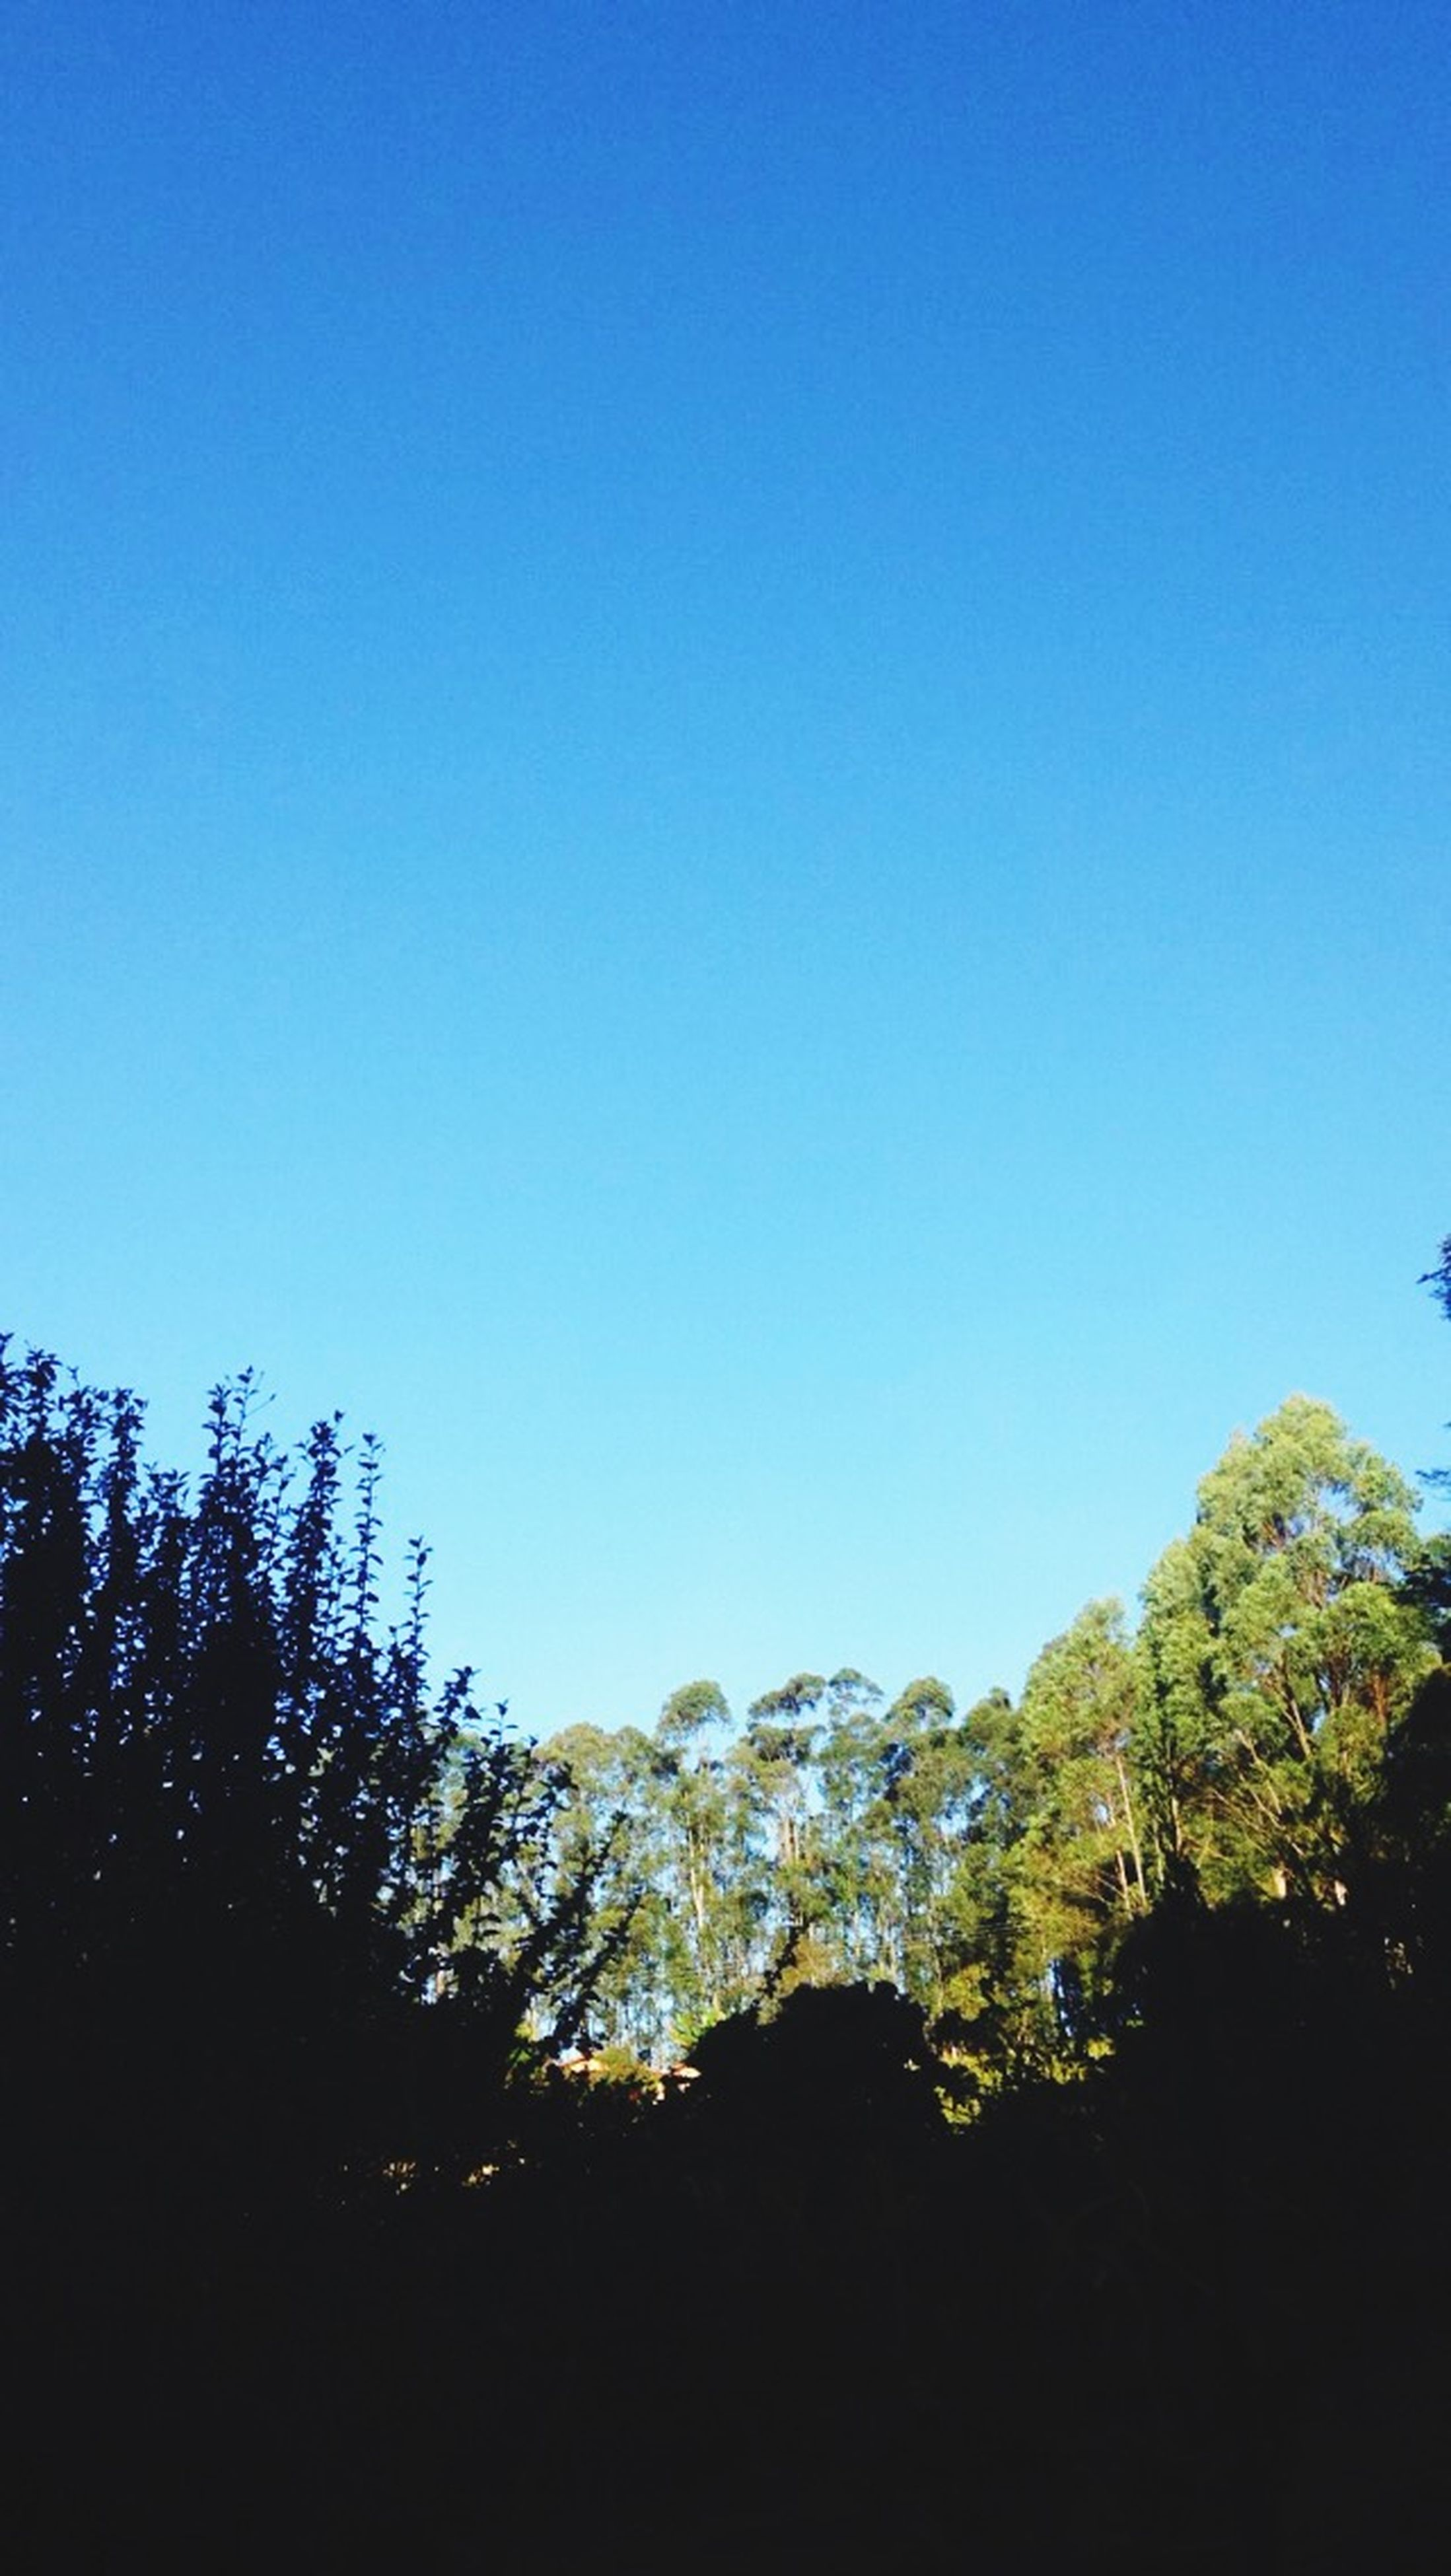 clear sky, blue, copy space, tree, tranquility, beauty in nature, tranquil scene, scenics, low angle view, nature, growth, idyllic, silhouette, outdoors, no people, day, landscape, non-urban scene, high section, sunlight